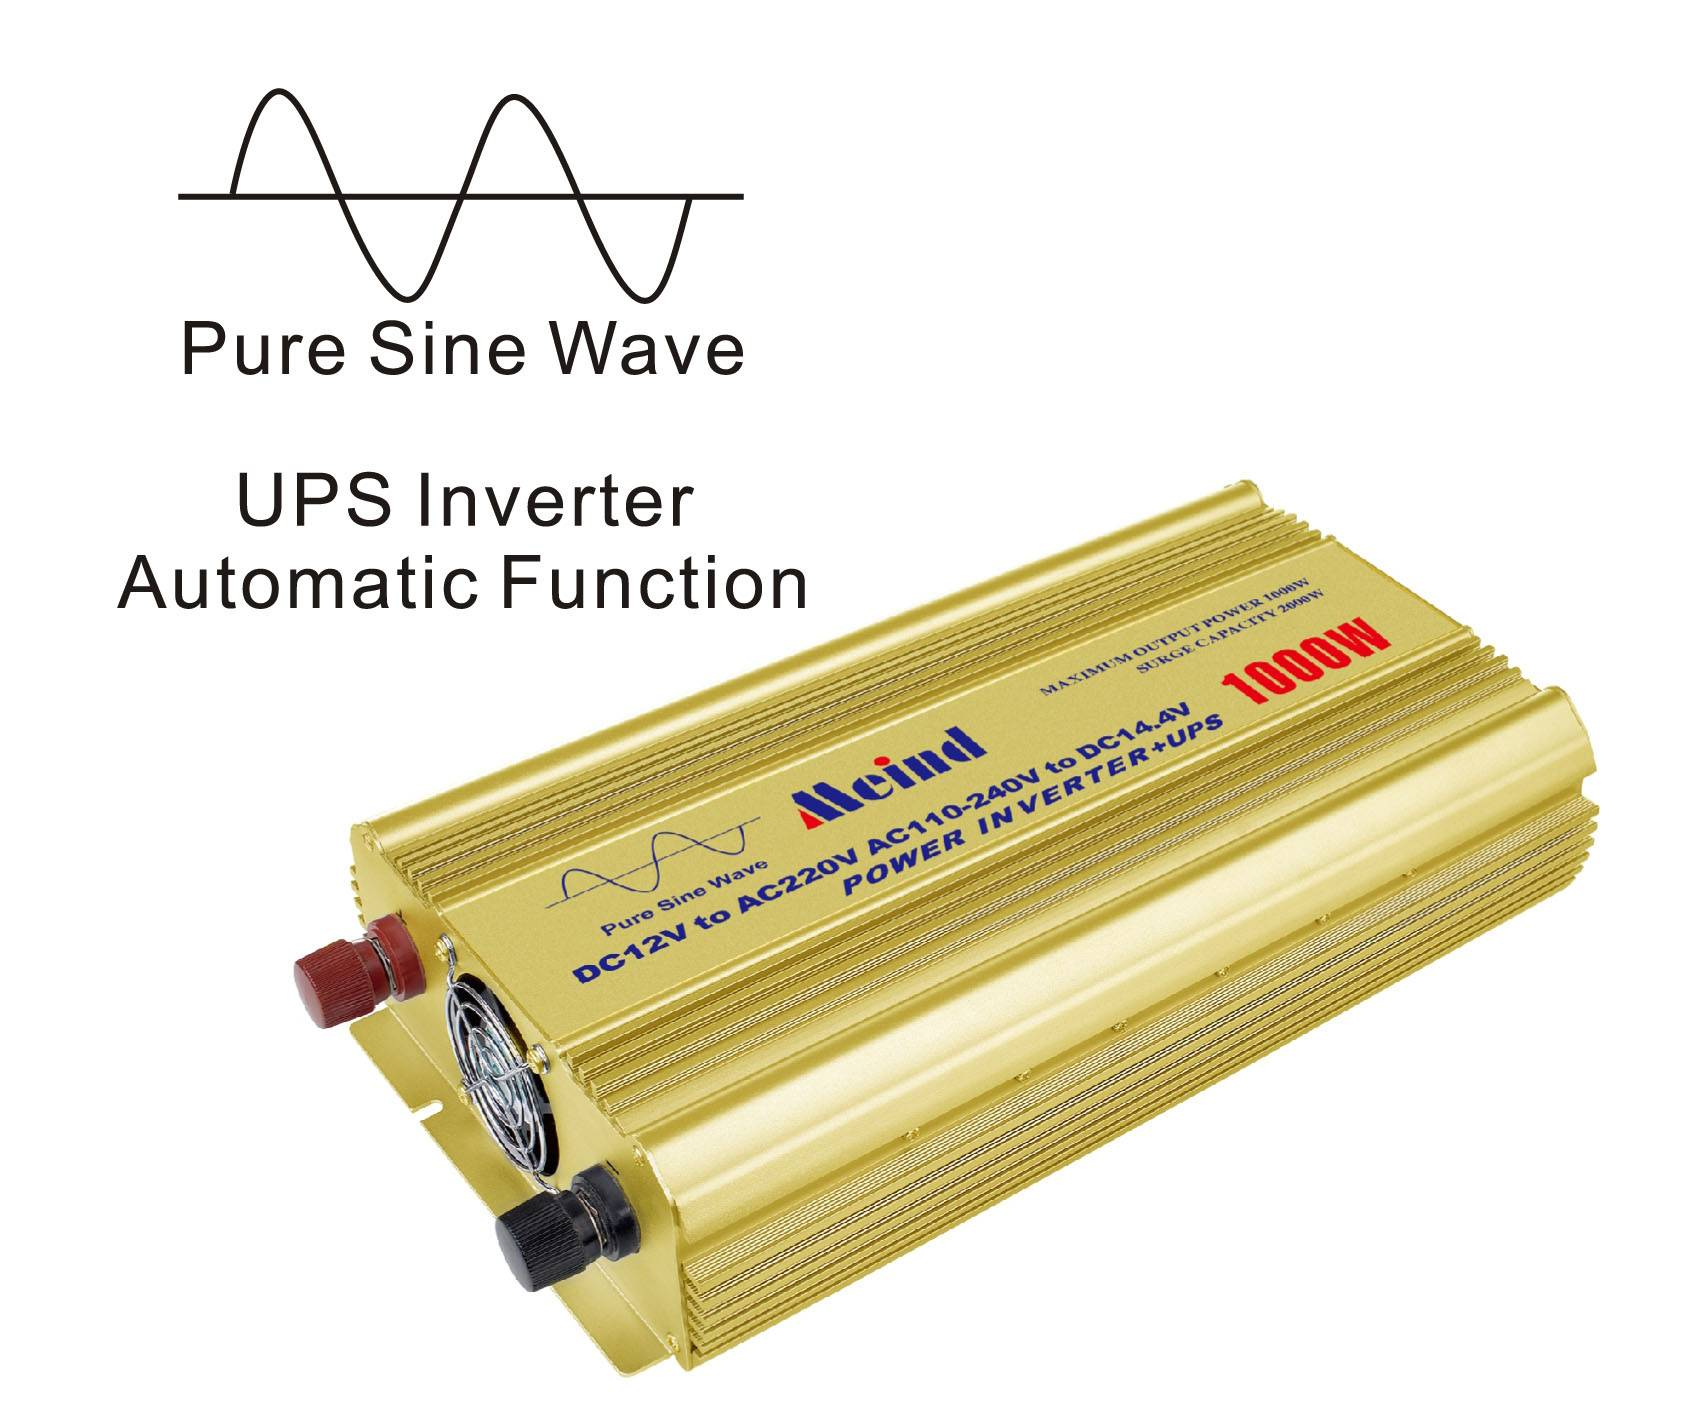 Meind 1000W Pure Sine Wave Inverter with UPS for home,car,solar off grid power system,travel,camping